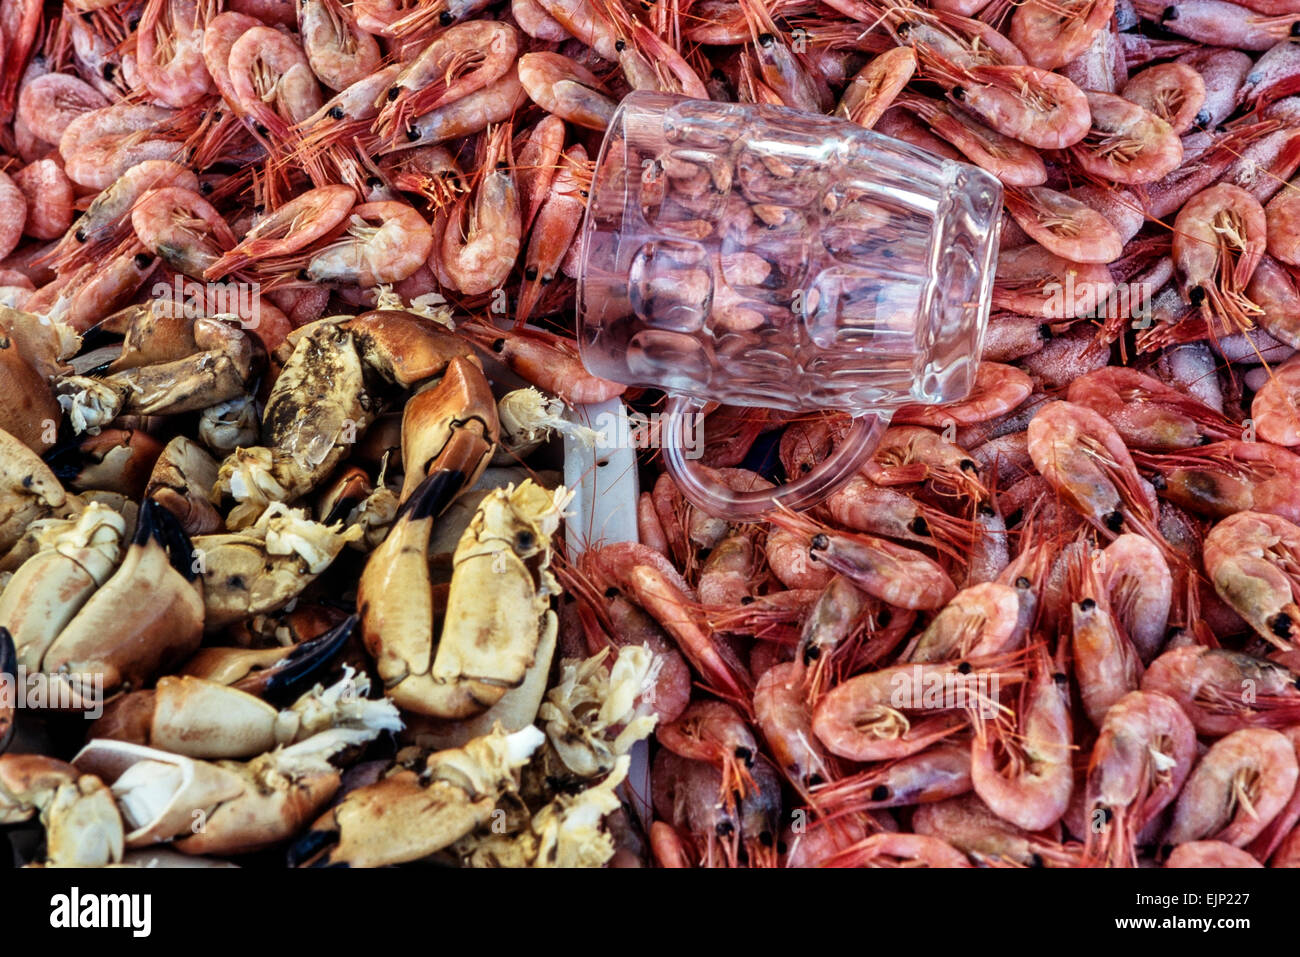 Cooked crab claws and prawns for sale. Great Yarmouth. Norfolk. UK - Stock Image